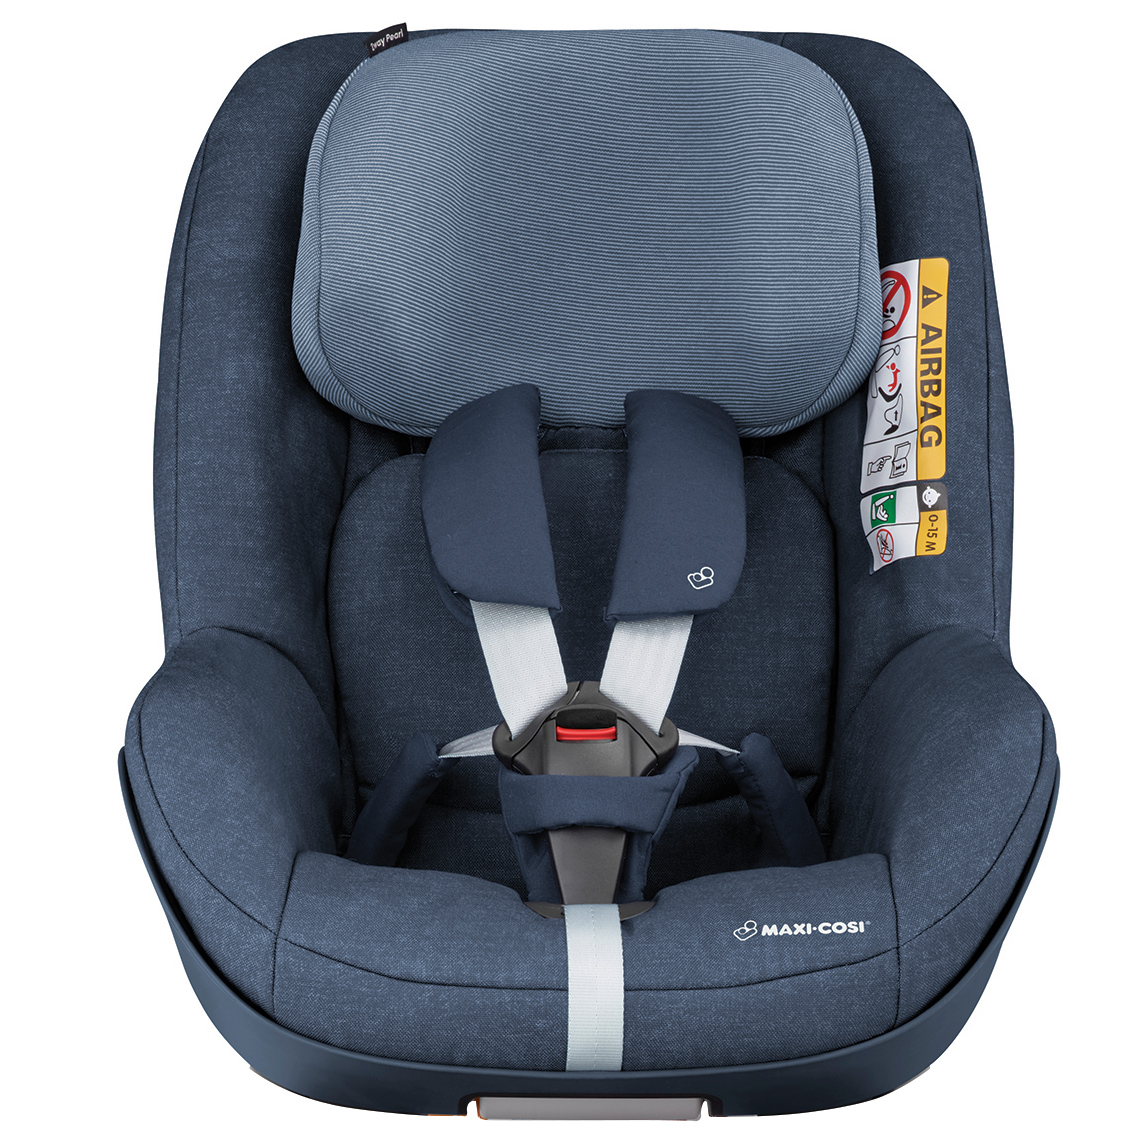 maxi cosi safety seat 2way pearl 2018 nomad blue buy at kidsroom car seats. Black Bedroom Furniture Sets. Home Design Ideas